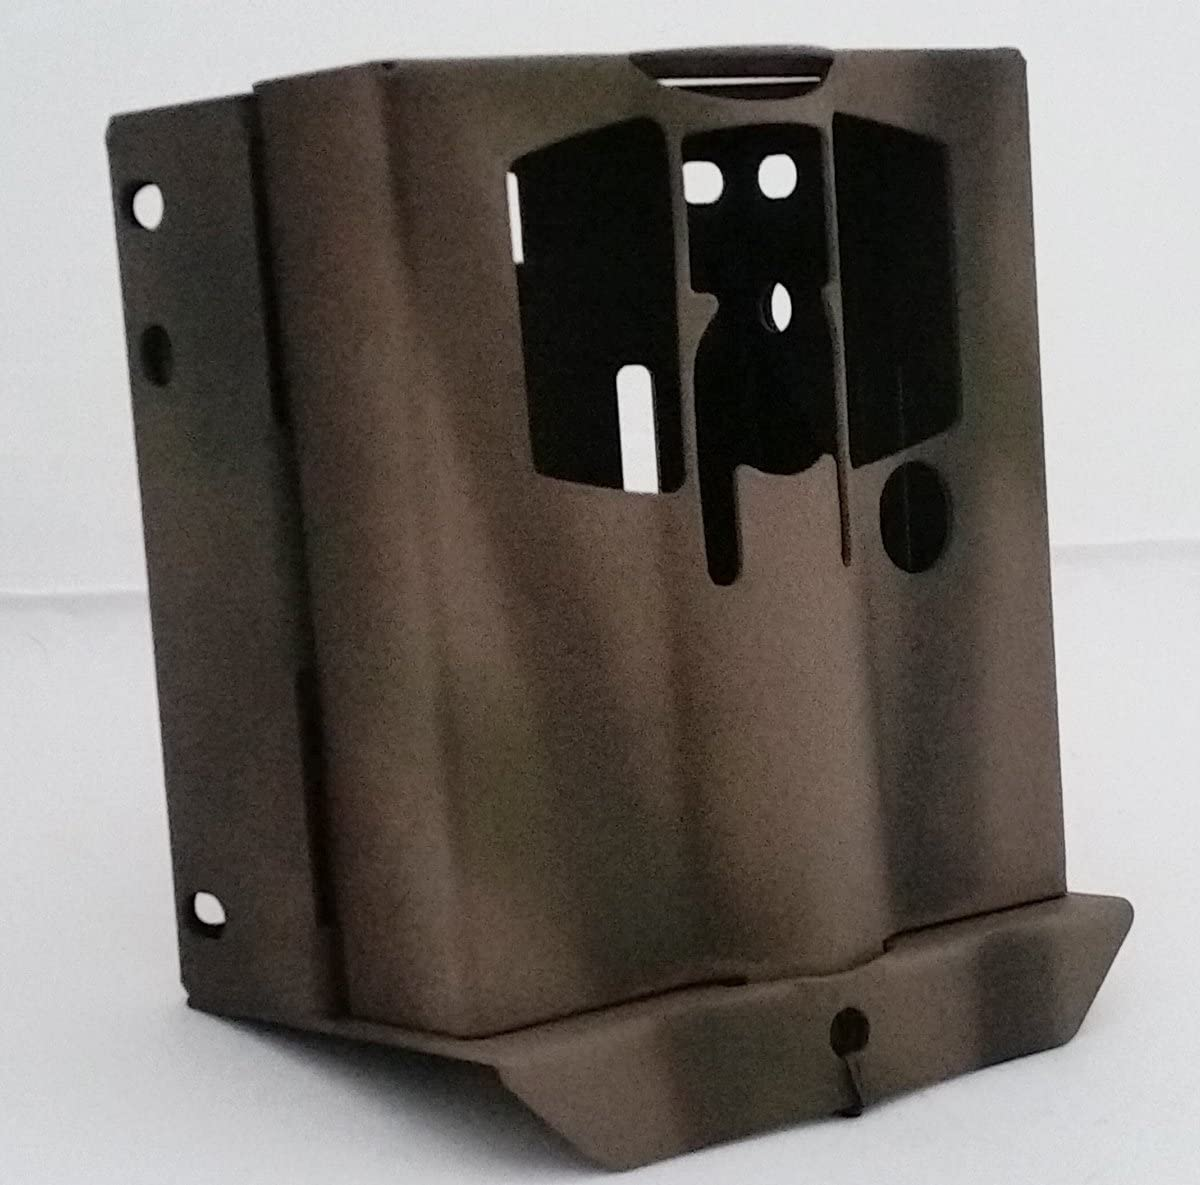 CamLockBox Security Box Compatible with Moultrie M-999i Trial Camera